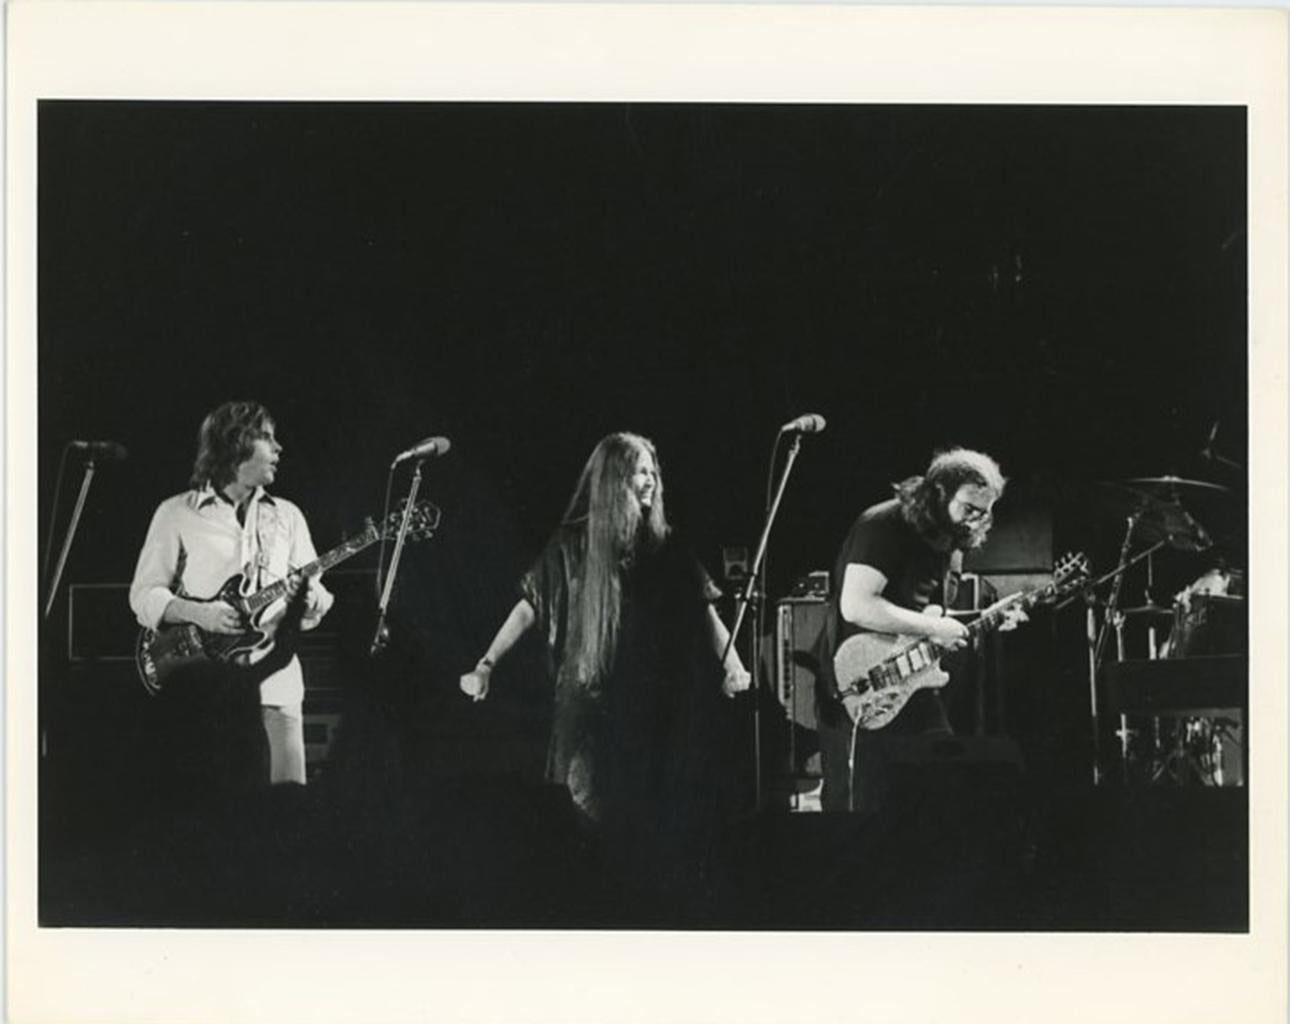 Grateful Dead Performing in Egypt 1978